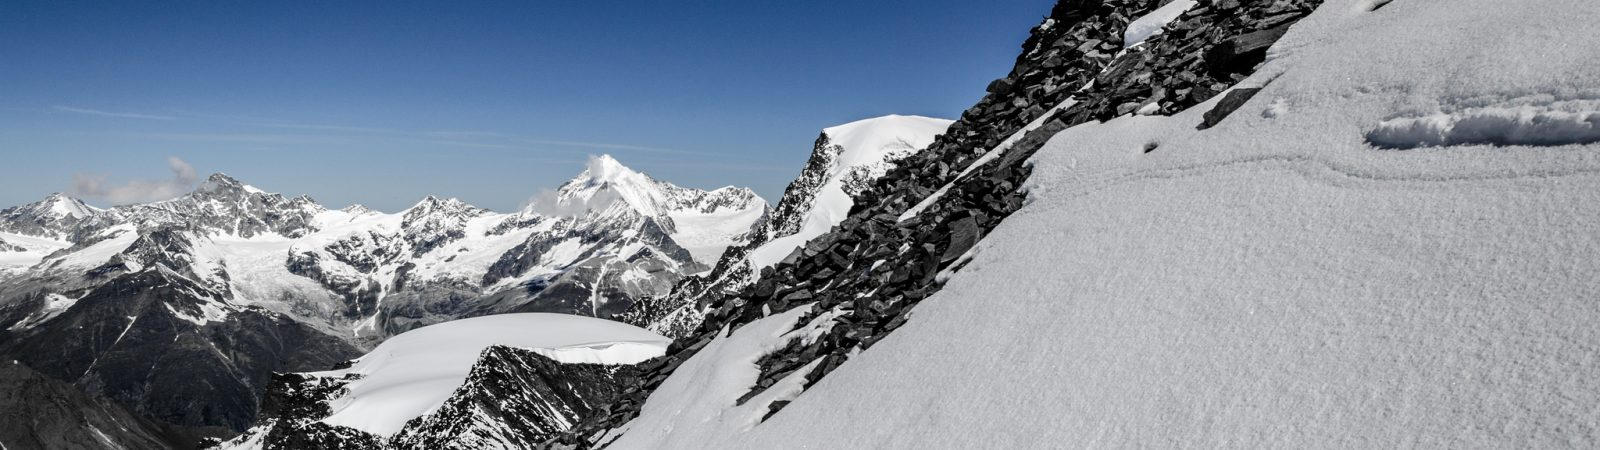 3-day ski mountaineering from Saas-Fee in the Swiss Alps